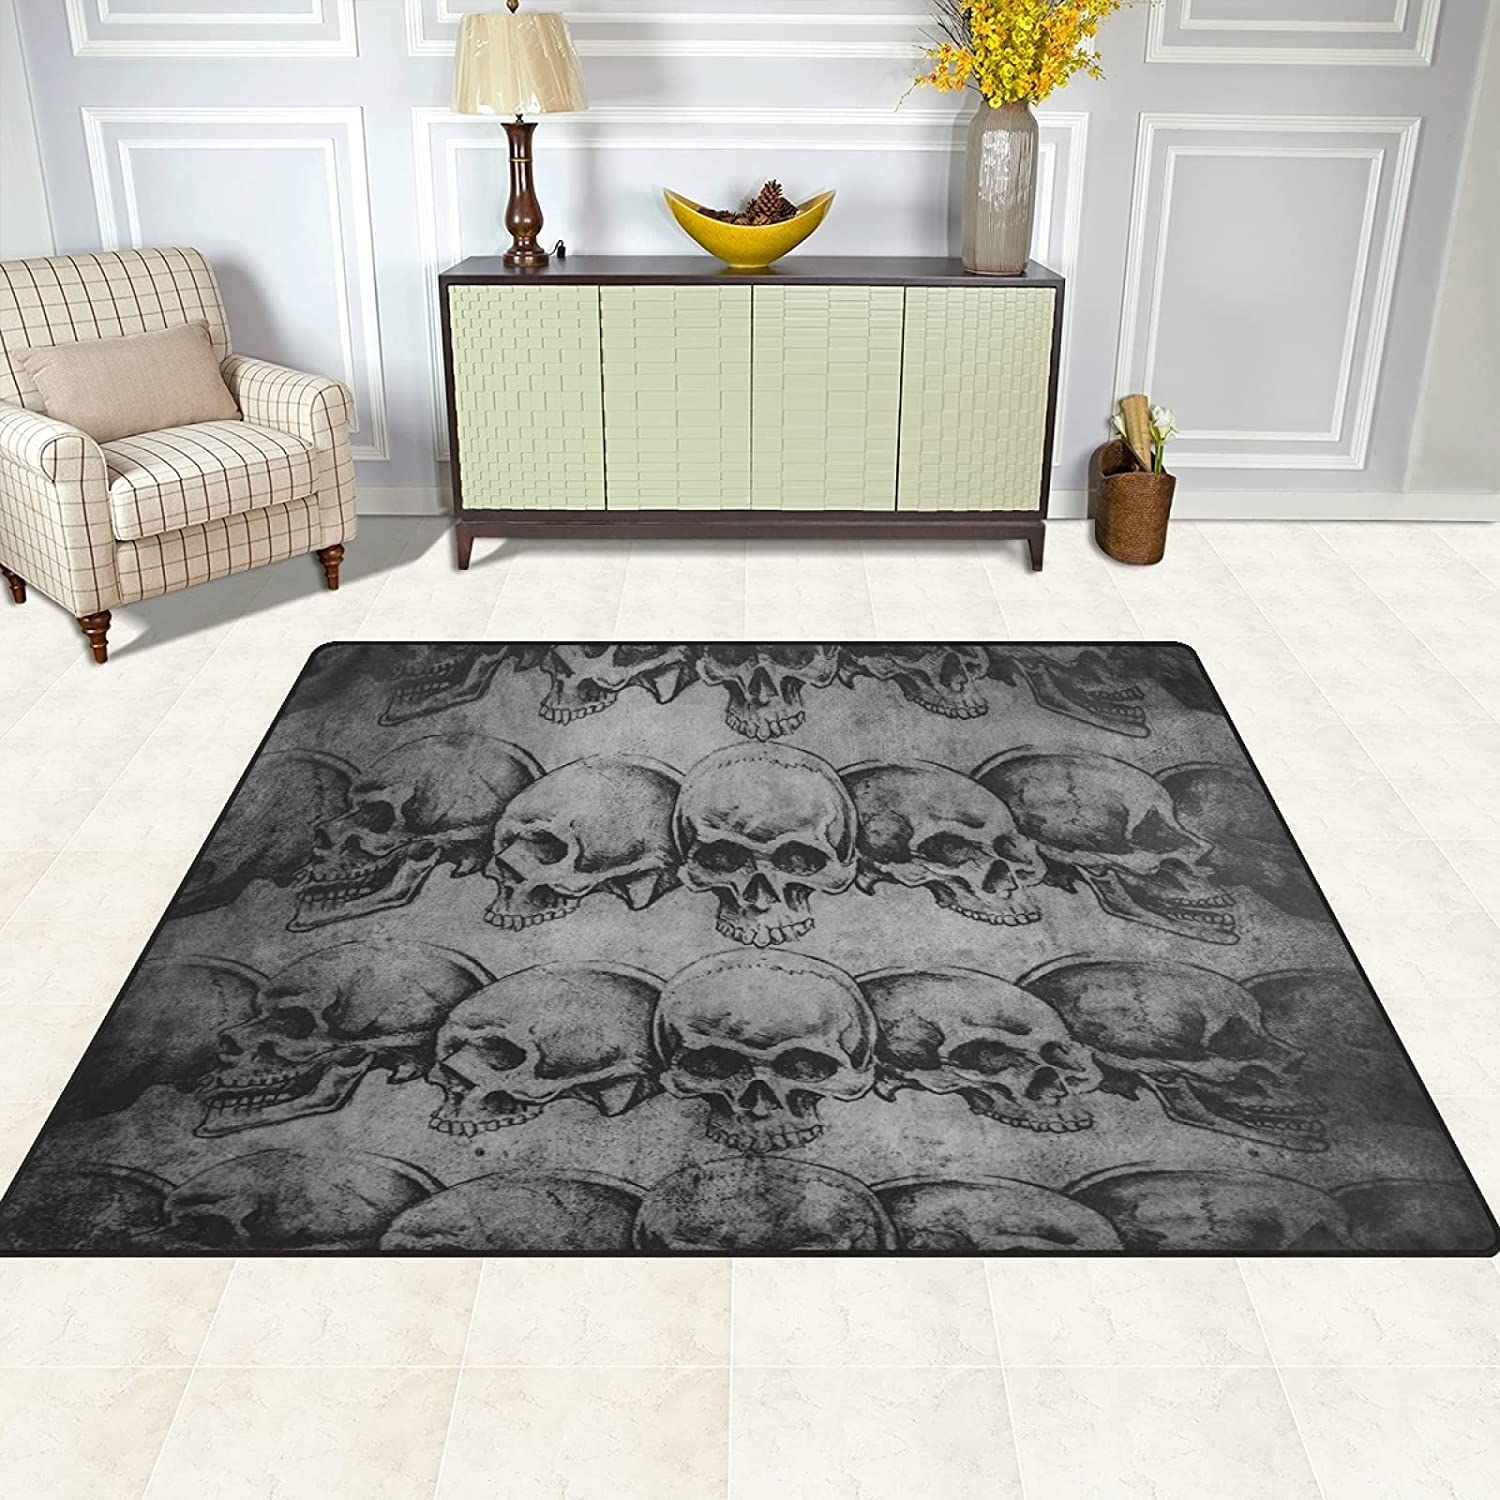 Area Rug Sugar Skull Print Living Carpet Limited price sale Rugs for Room Max 48% OFF